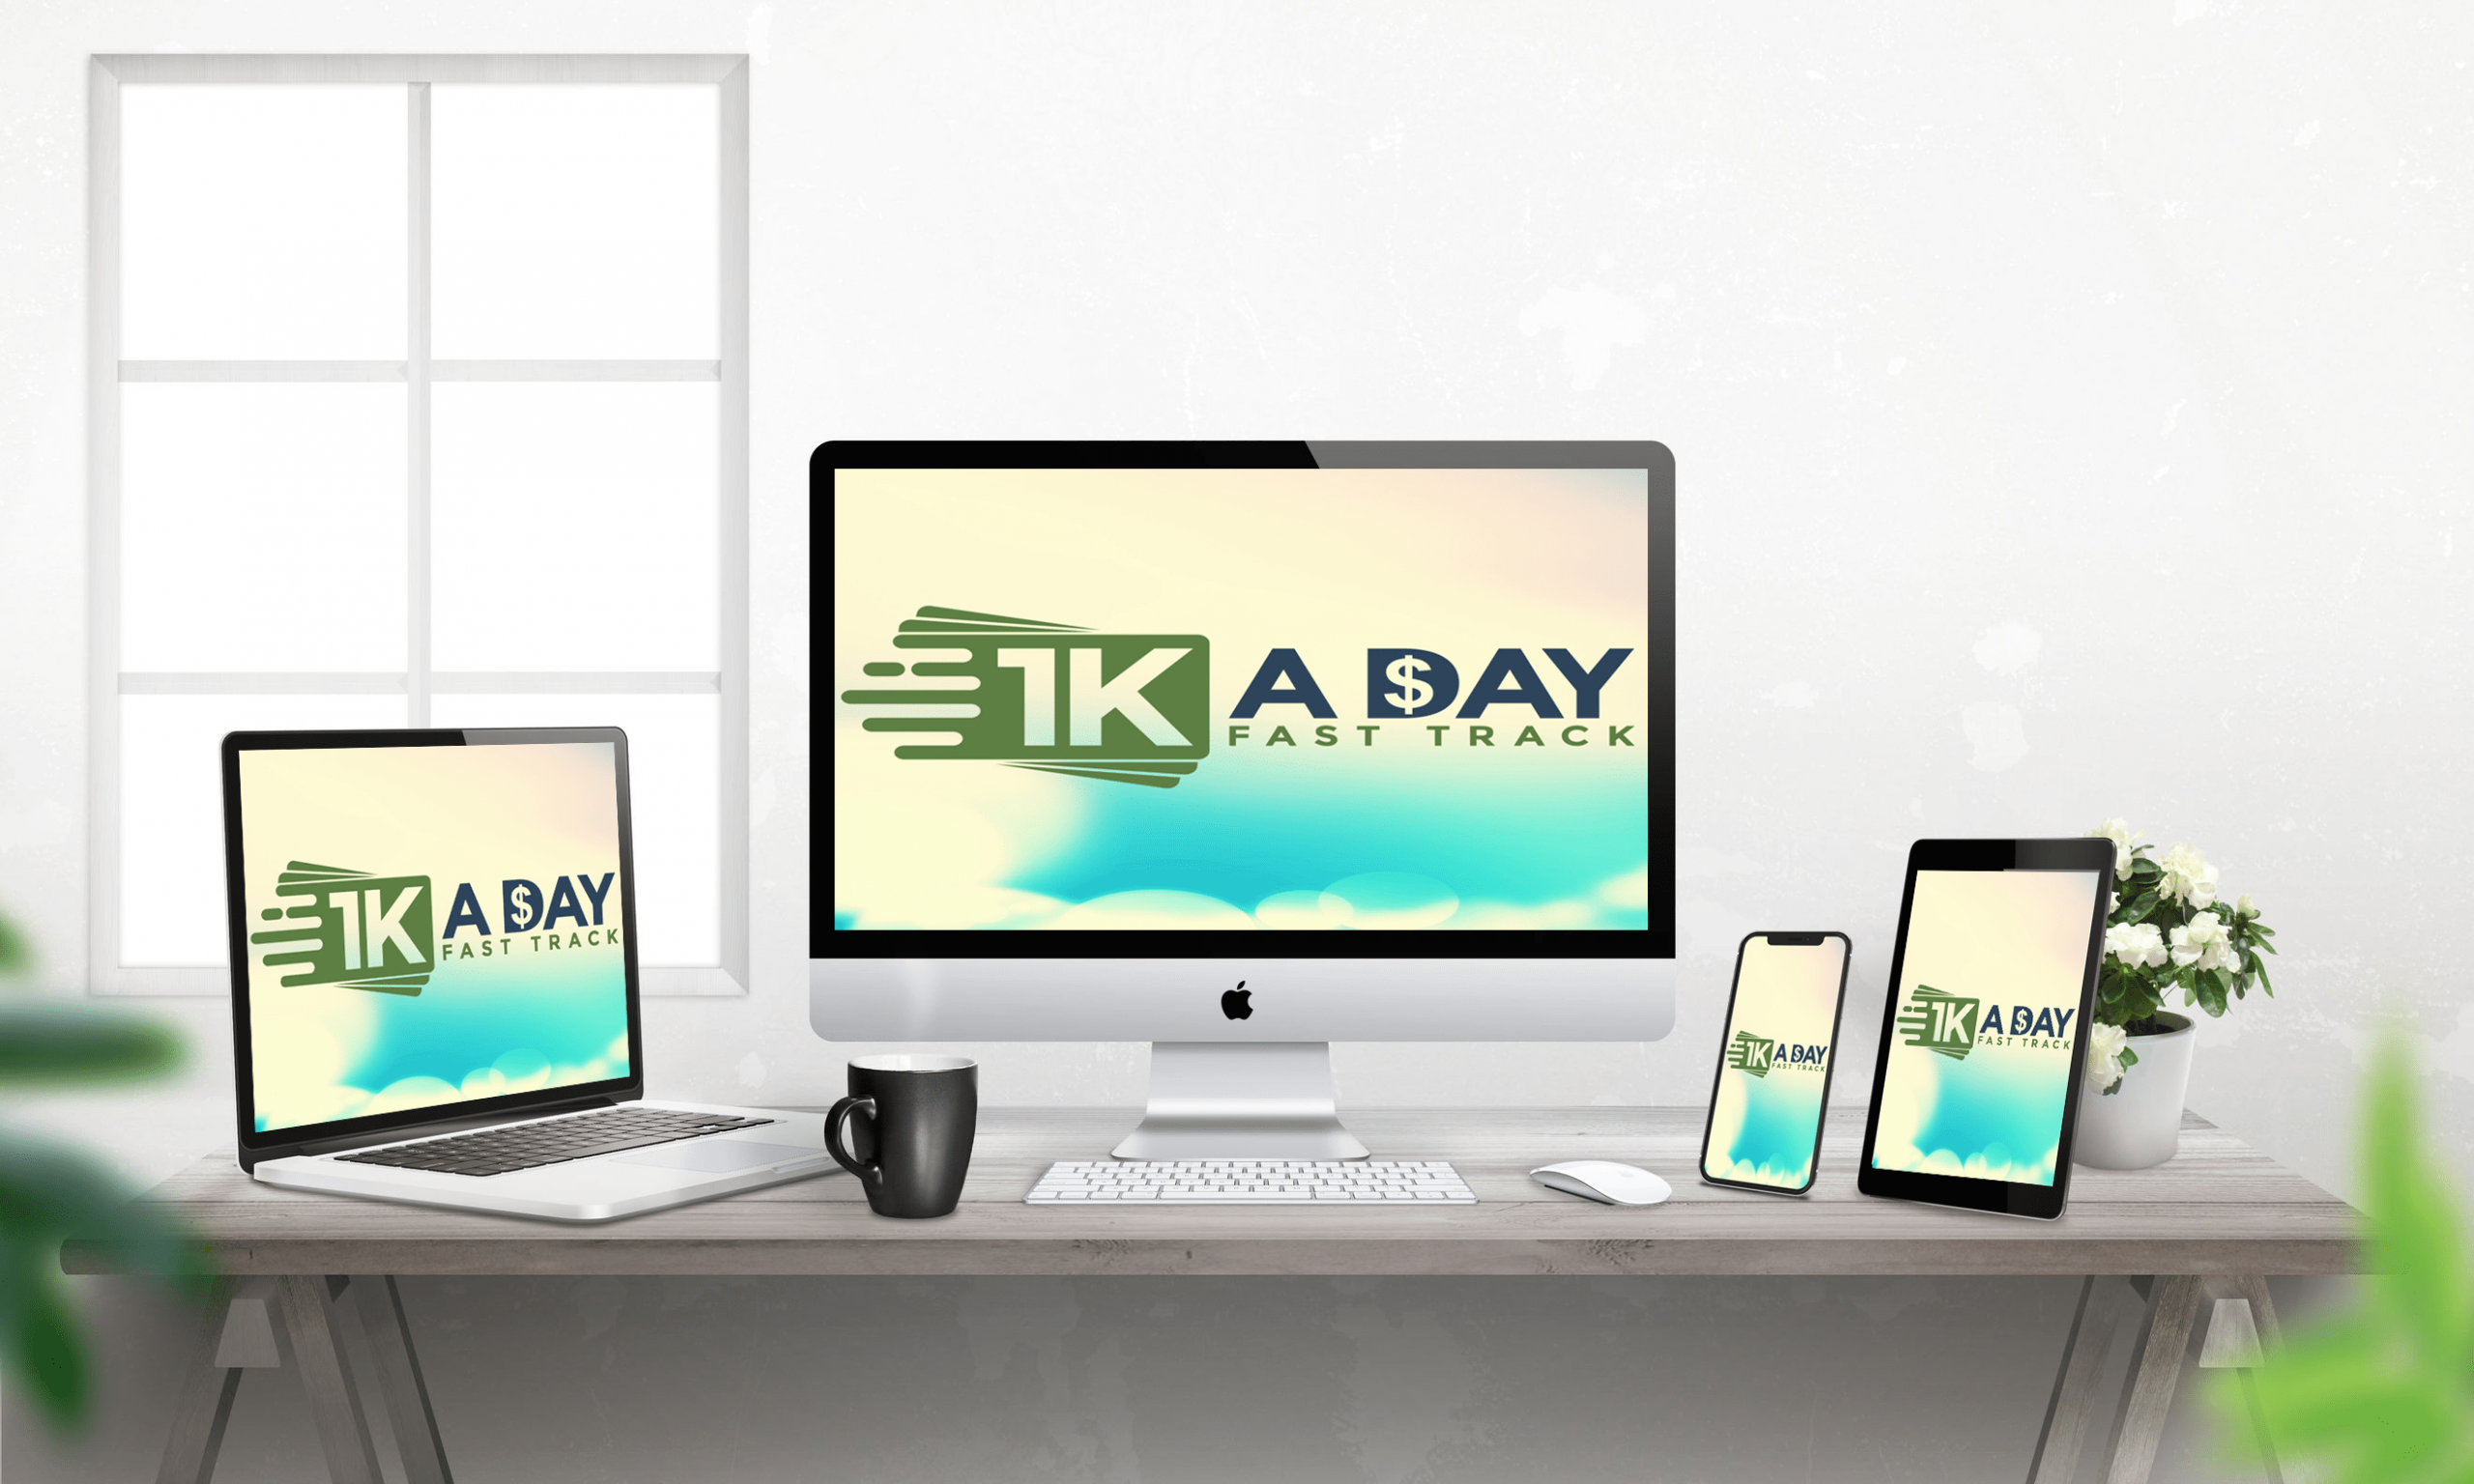 1K A Day Fast Track Free Download